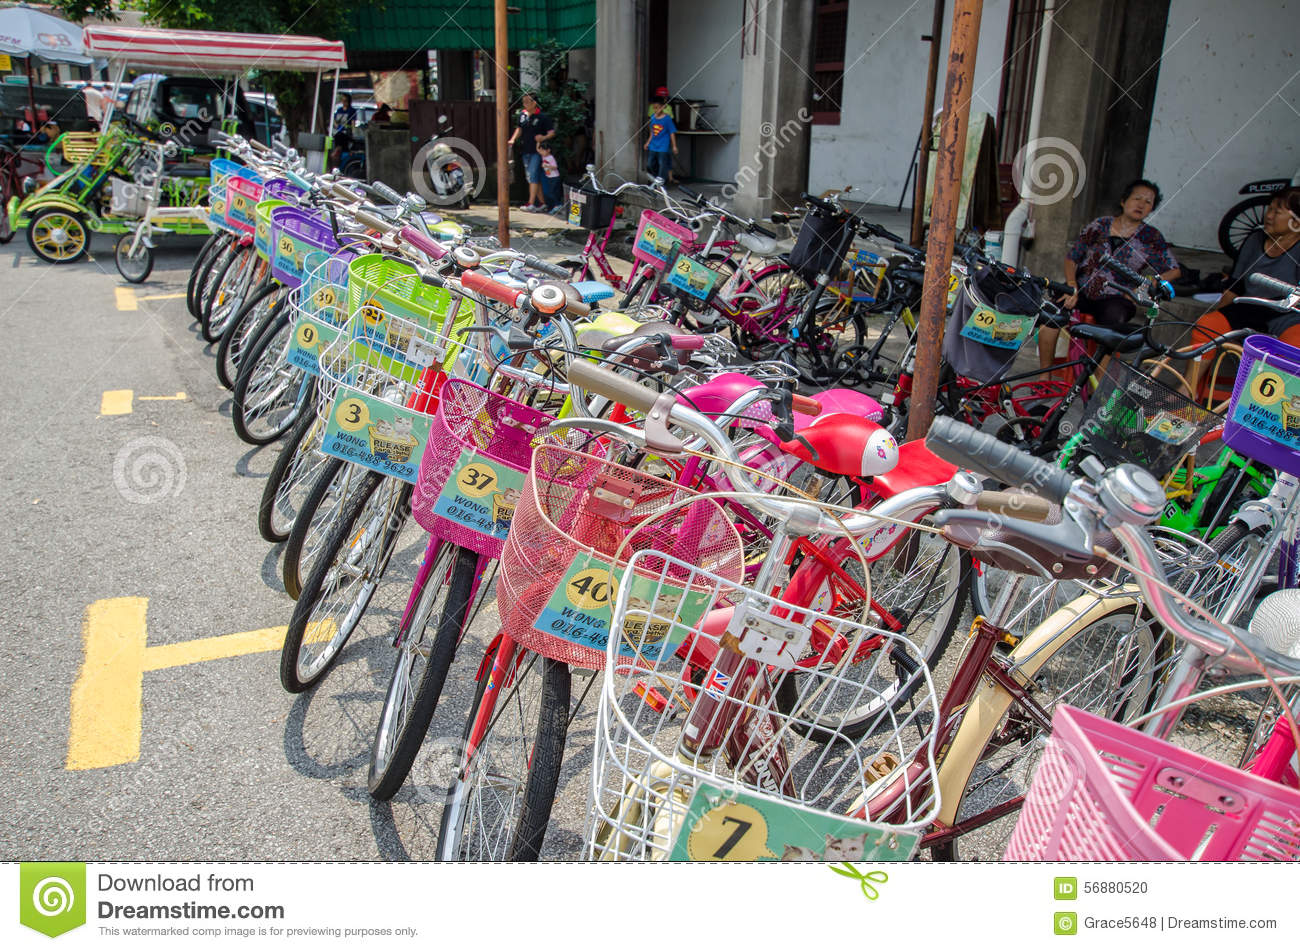 Bicycle Renting Service Available In The Street Art In Georgetown